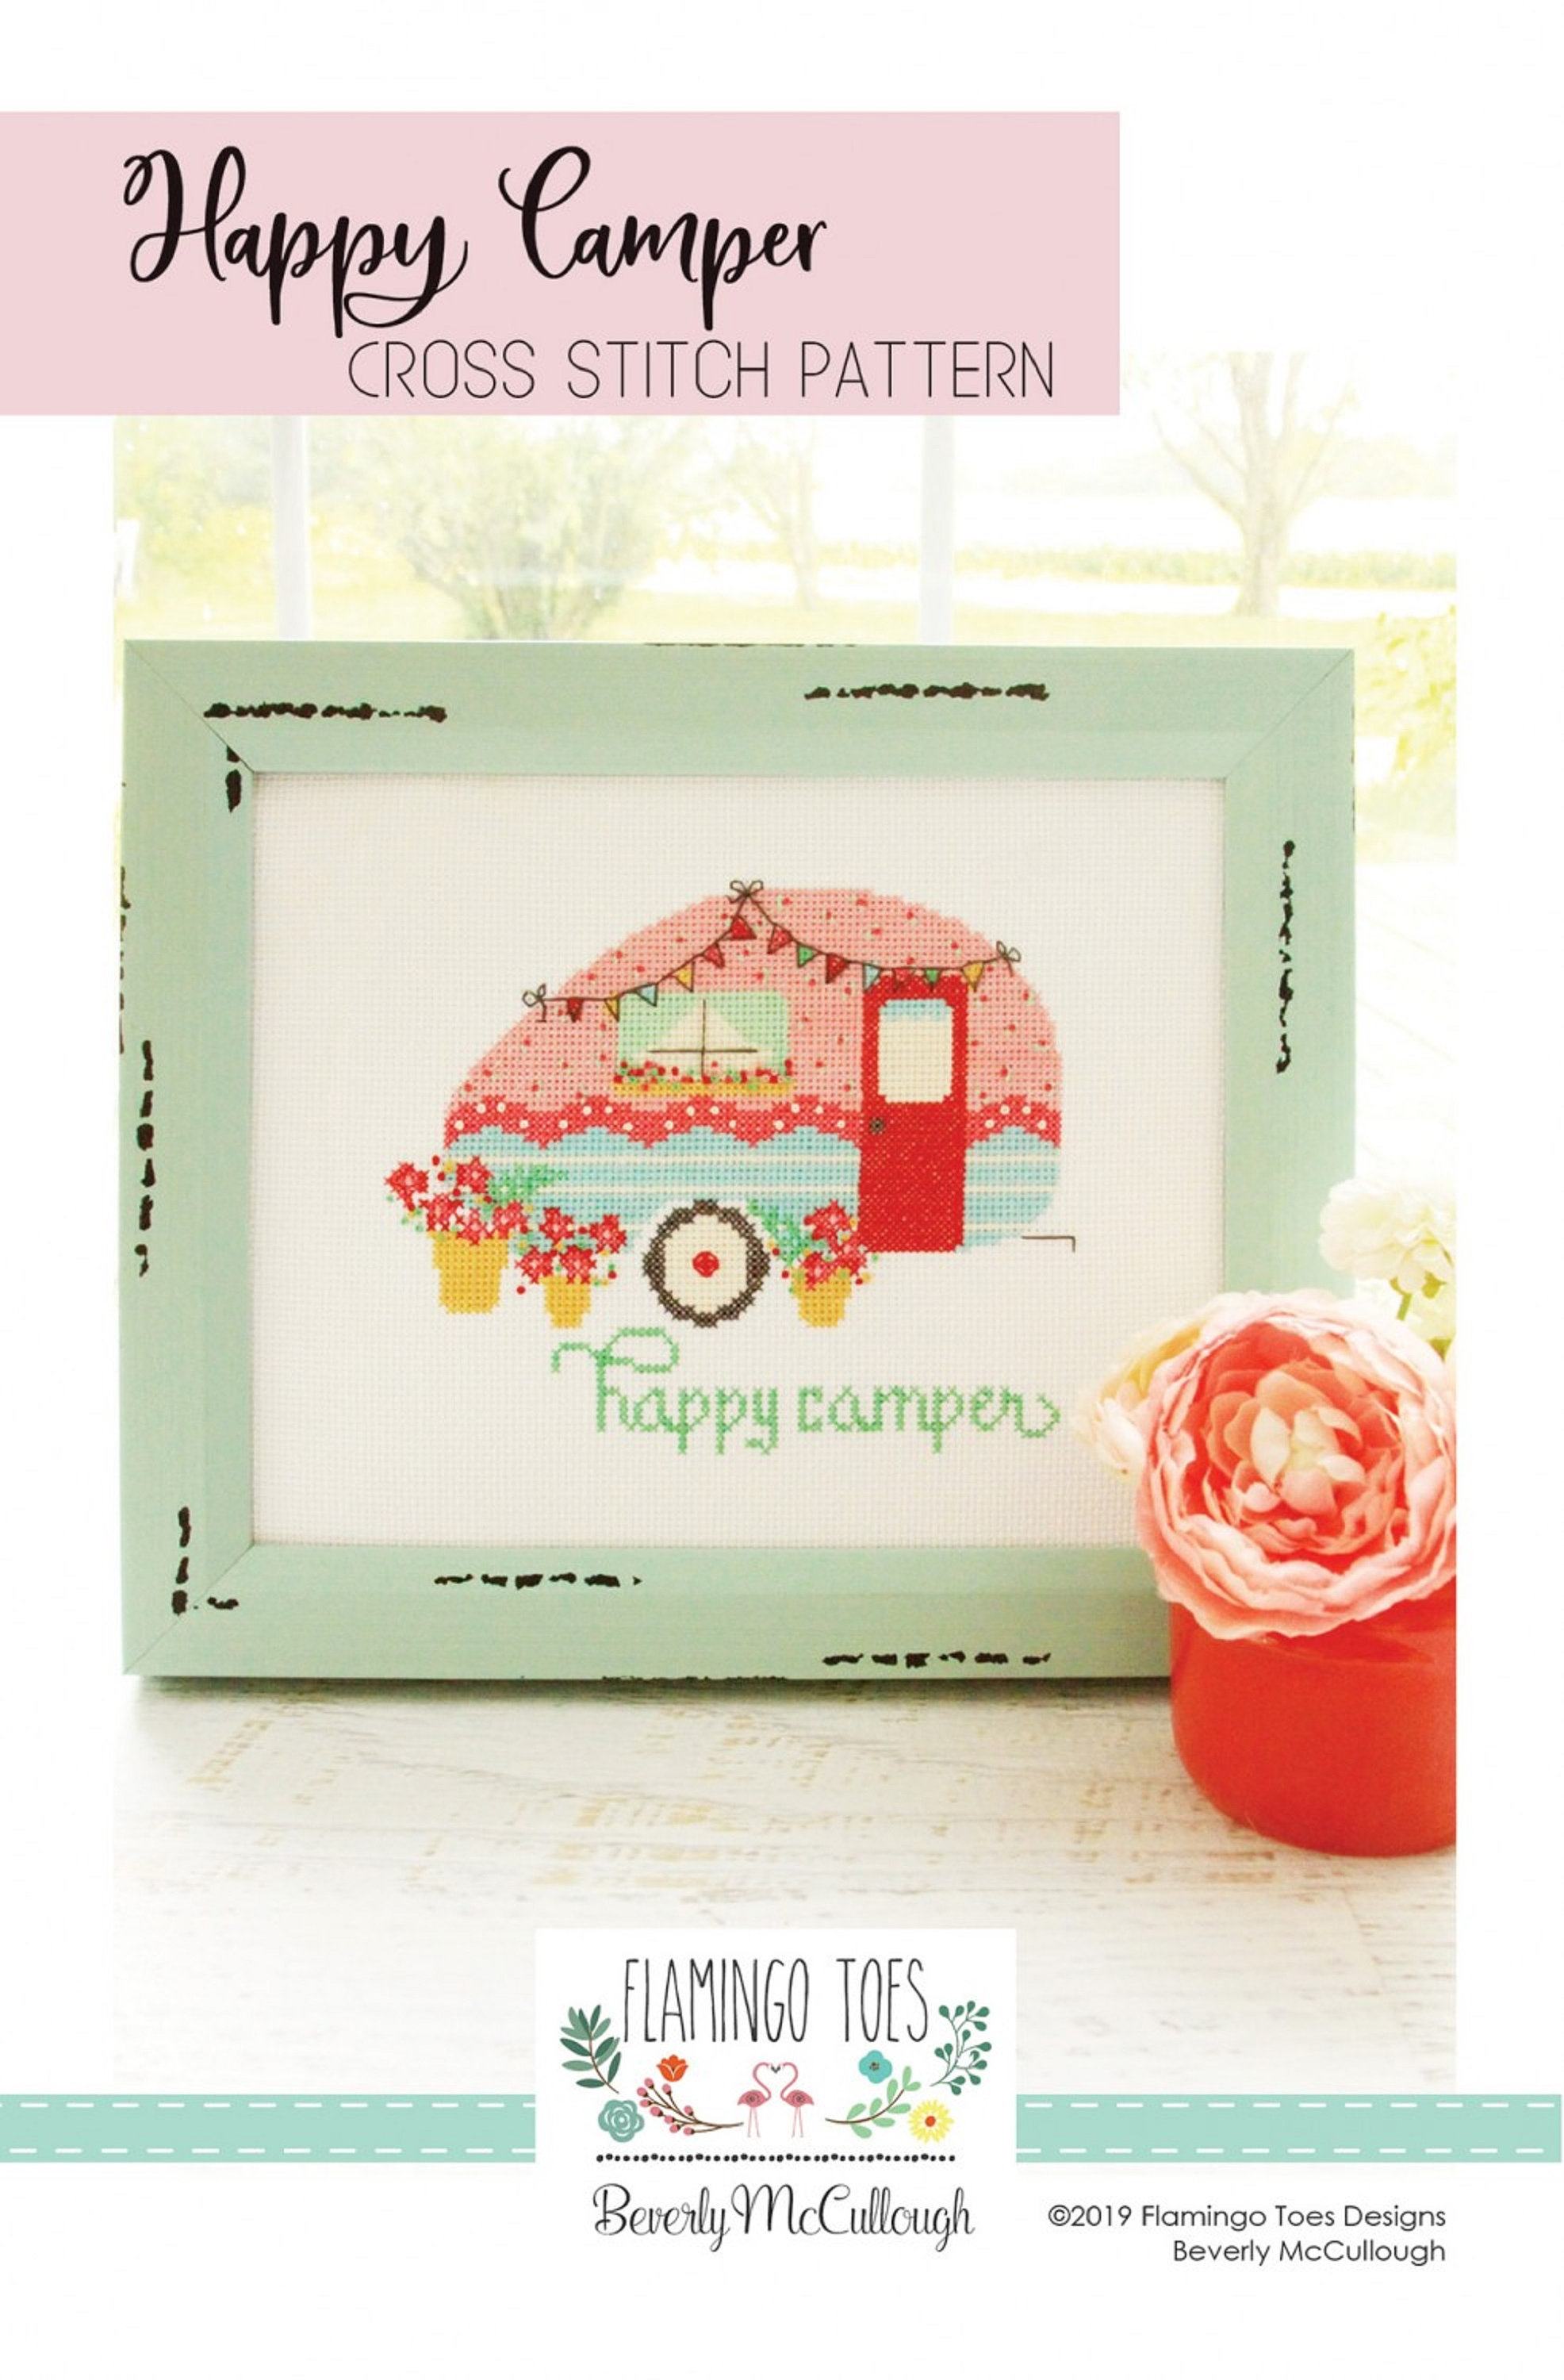 Happy Camper Cross-Stitch Pattern, by Beverly McCullough of Flamingo Toes